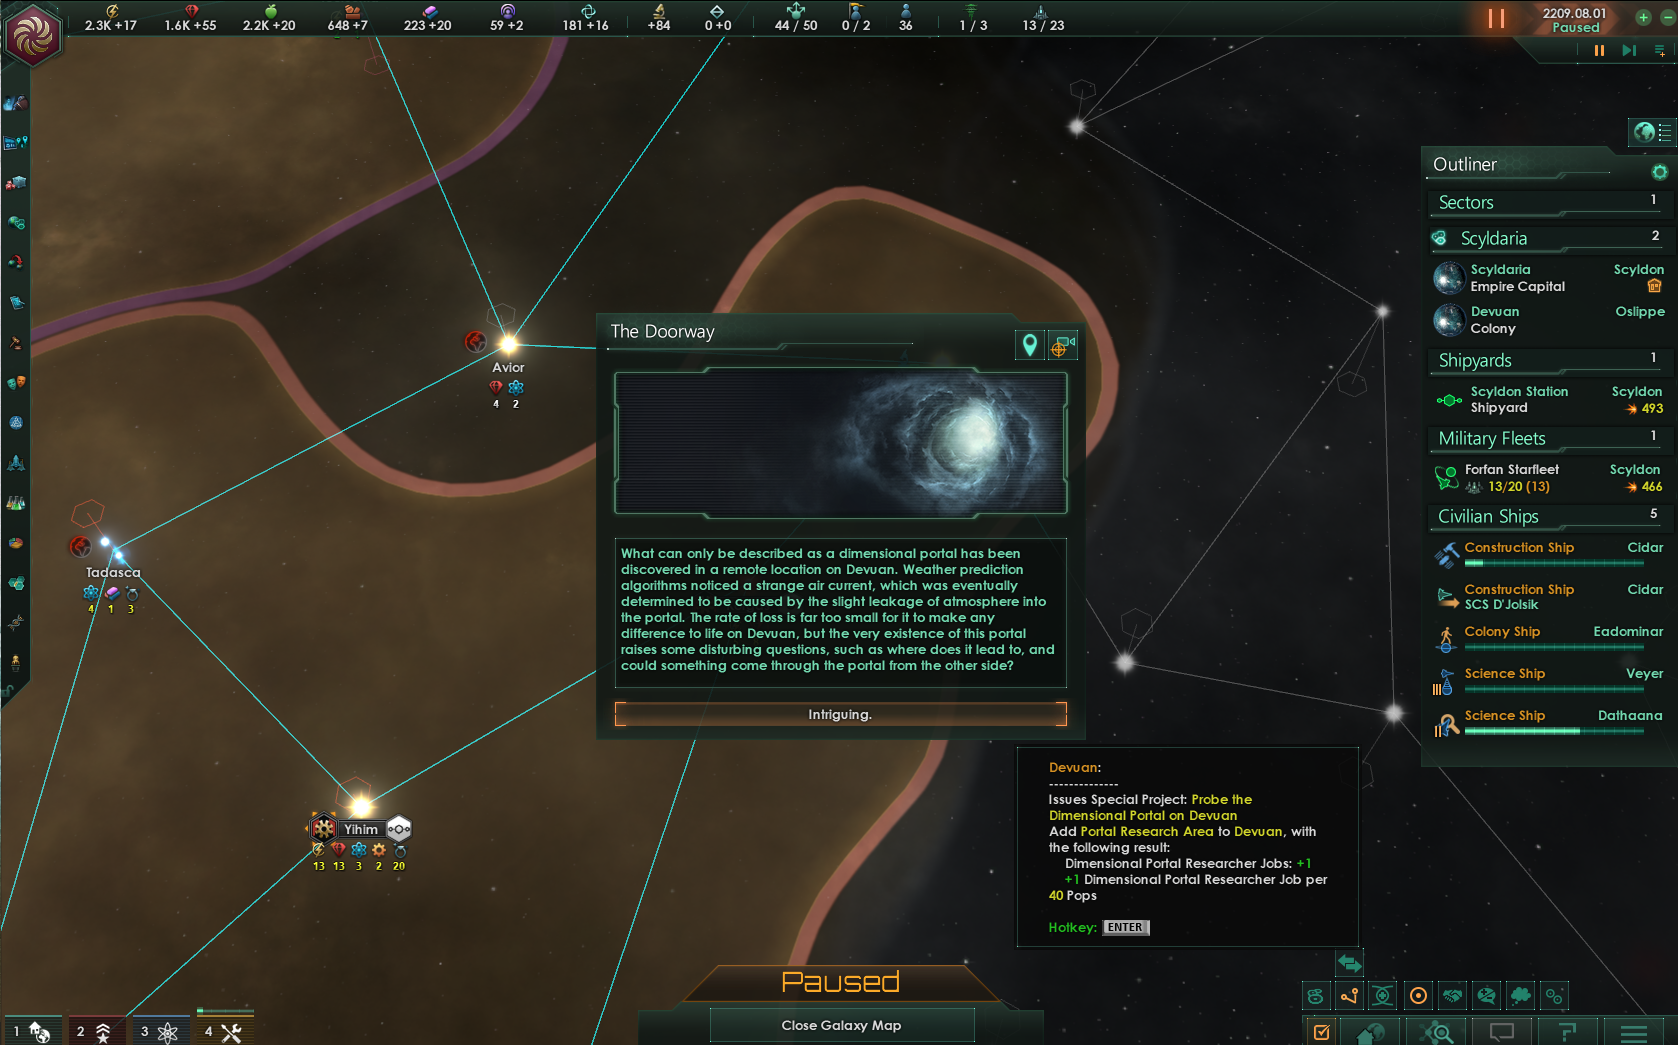 Stellaris Devuan Planet